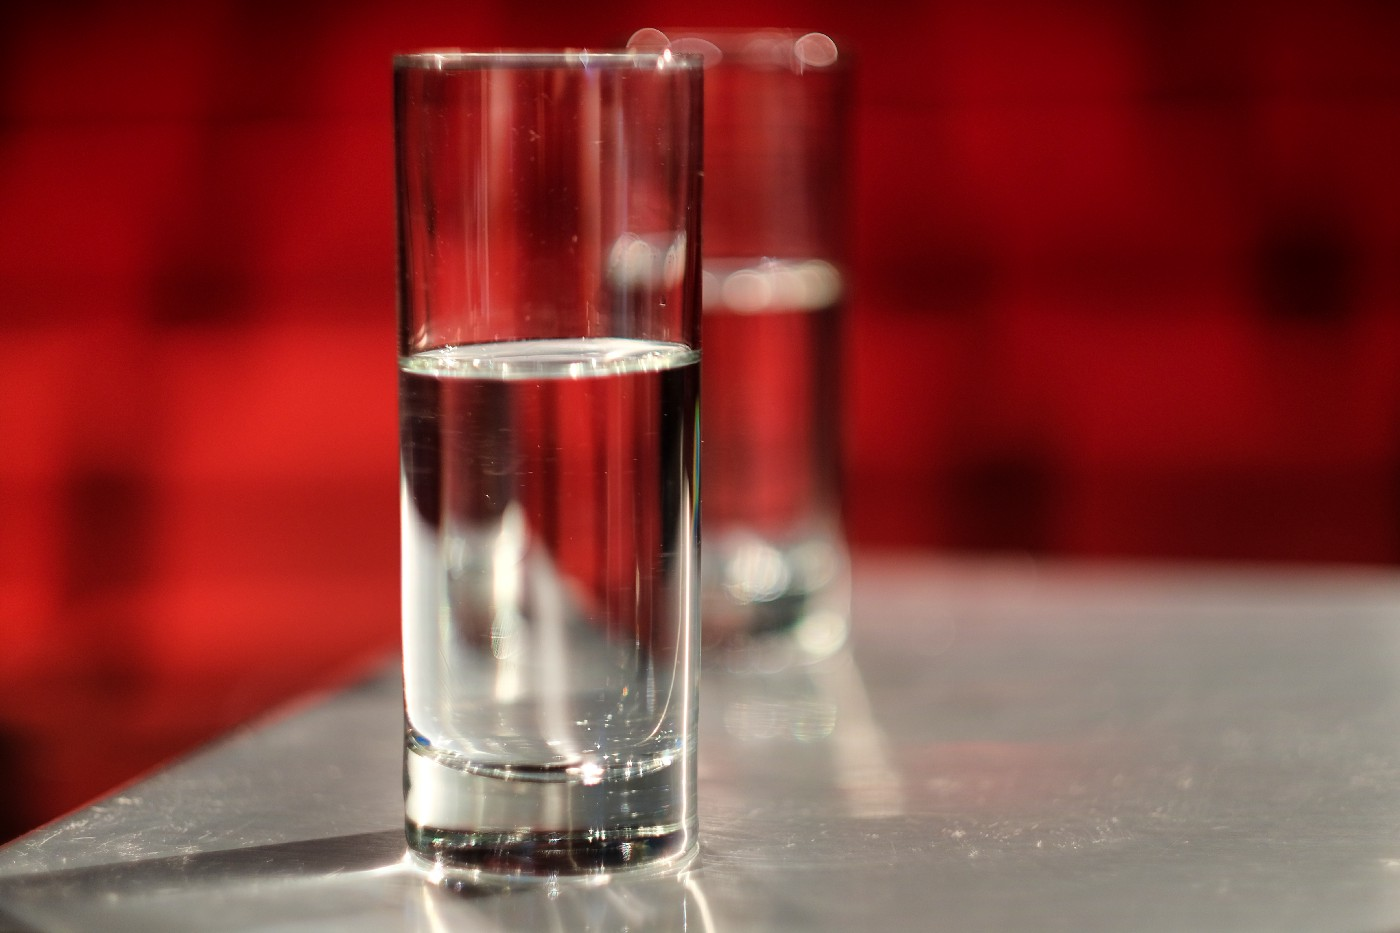 Two transparent glasses which are half filled with water kept on a table.